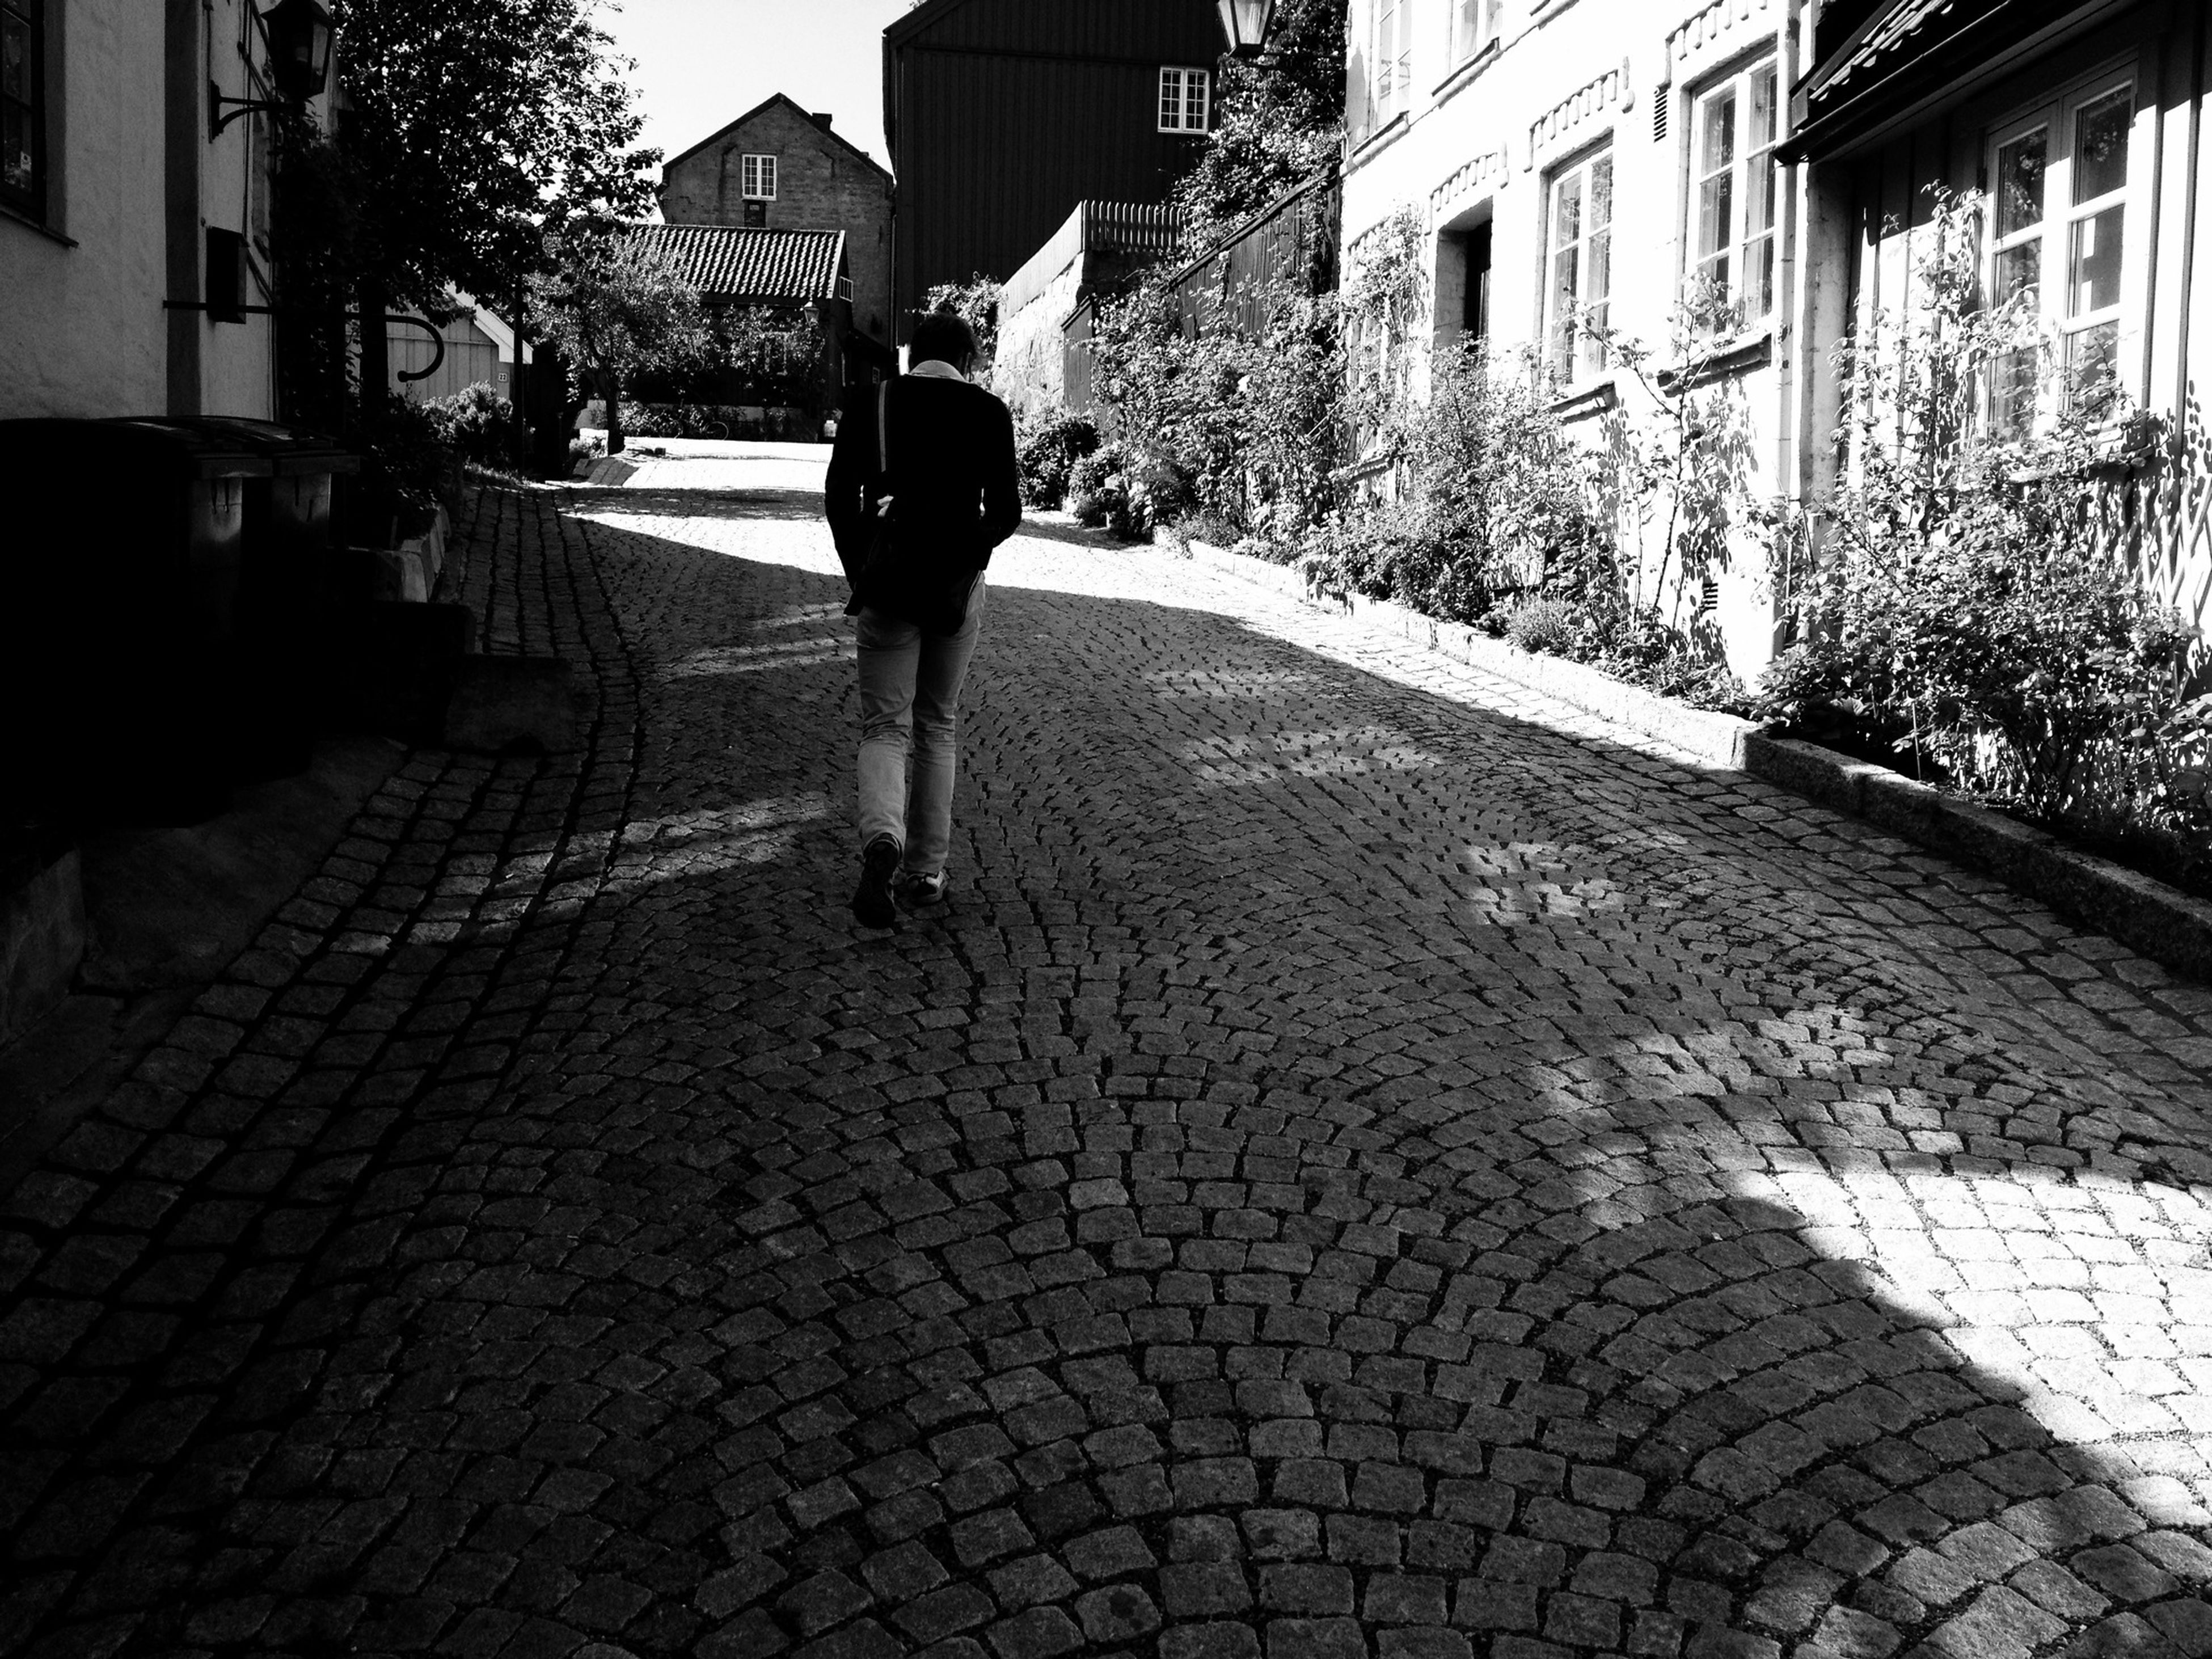 building exterior, architecture, built structure, cobblestone, walking, lifestyles, the way forward, street, rear view, full length, person, men, leisure activity, city, footpath, paving stone, sunlight, walkway